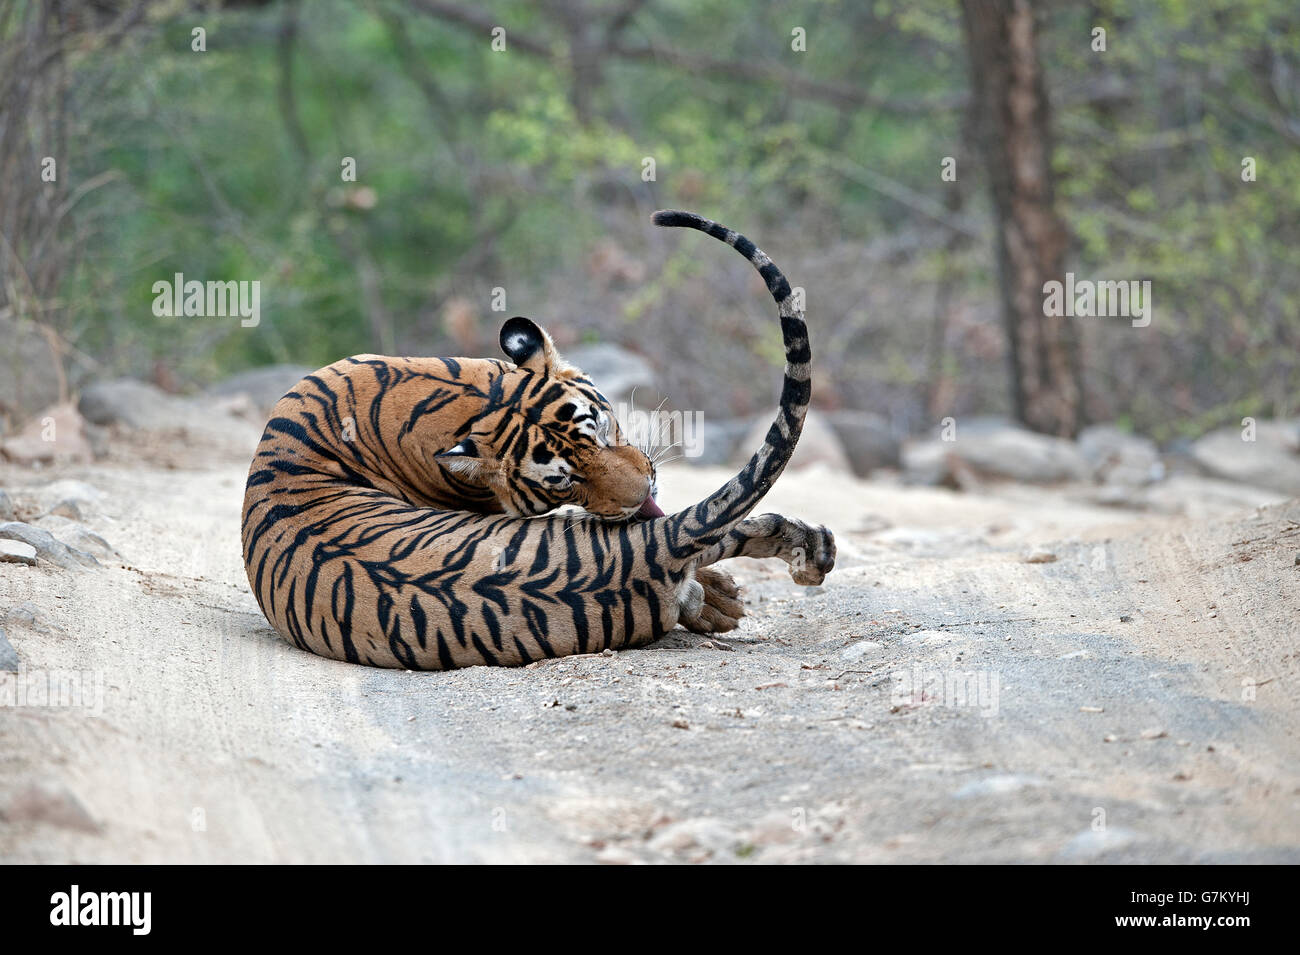 The image of Tiger ( Panthera tigris ) Pacman or T85 was taken in Ranthambore, India Stock Photo